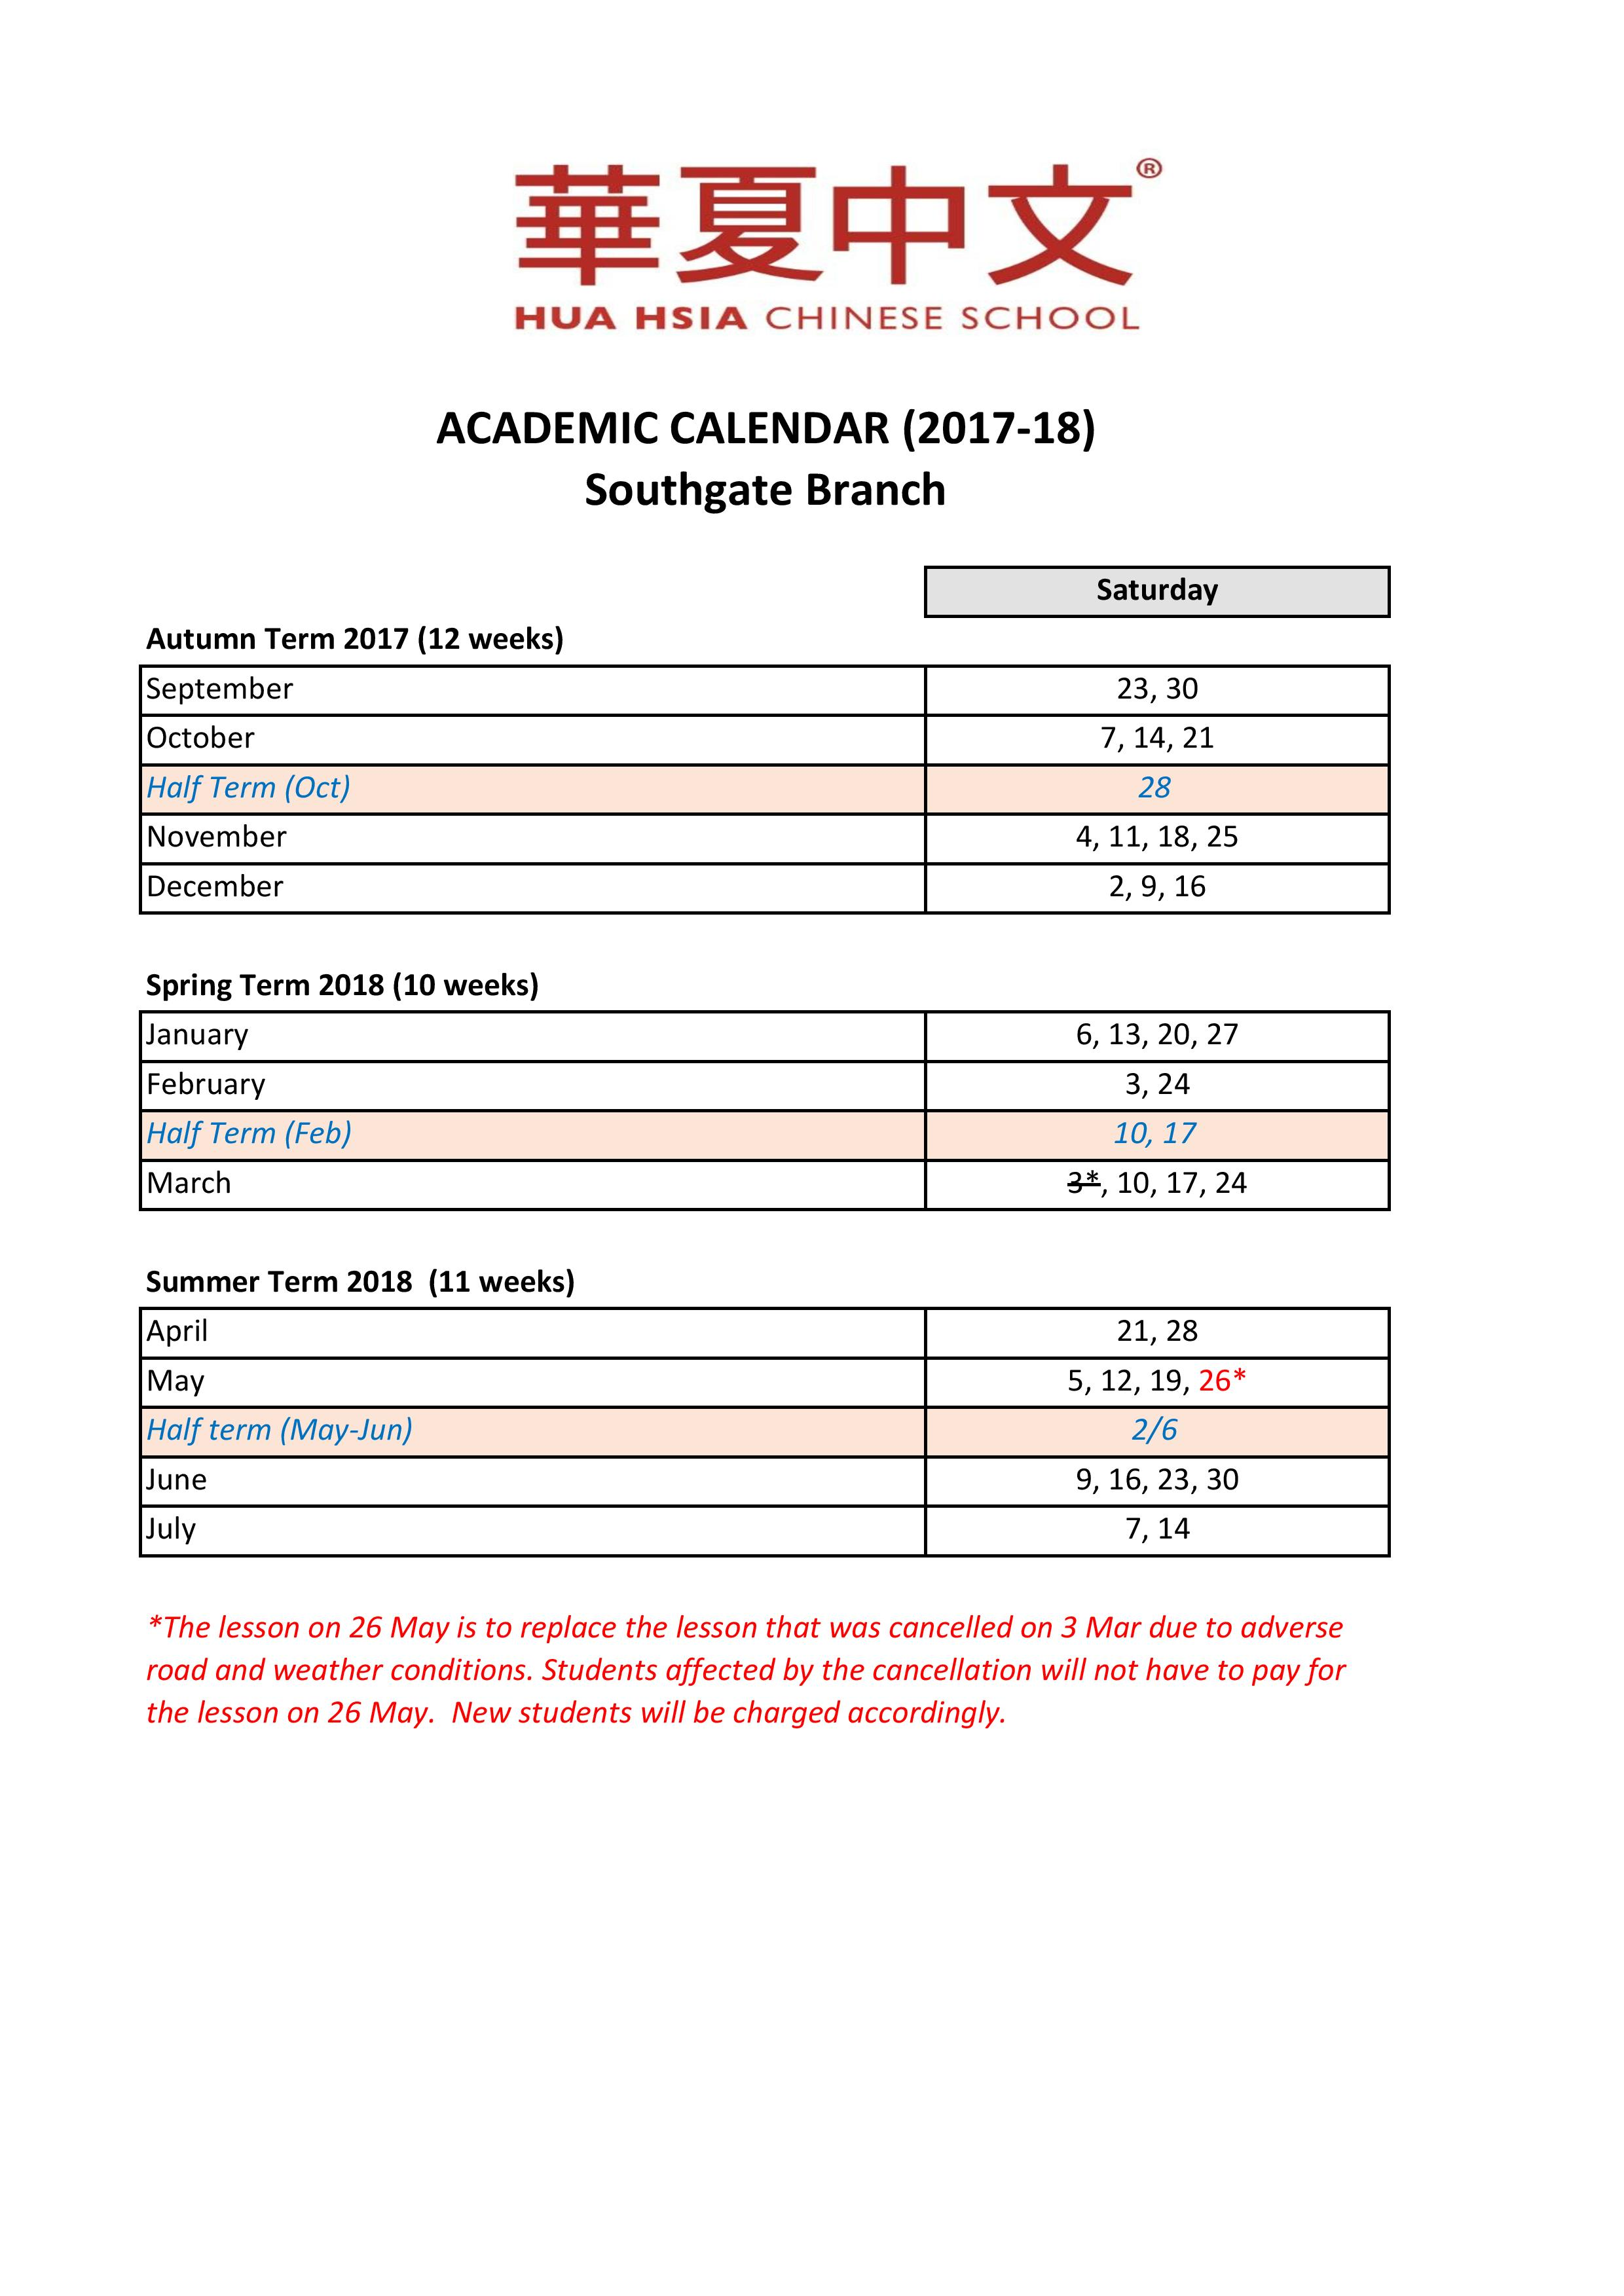 Academic Calendar (2017-18) – Southgate-page-001 (1)